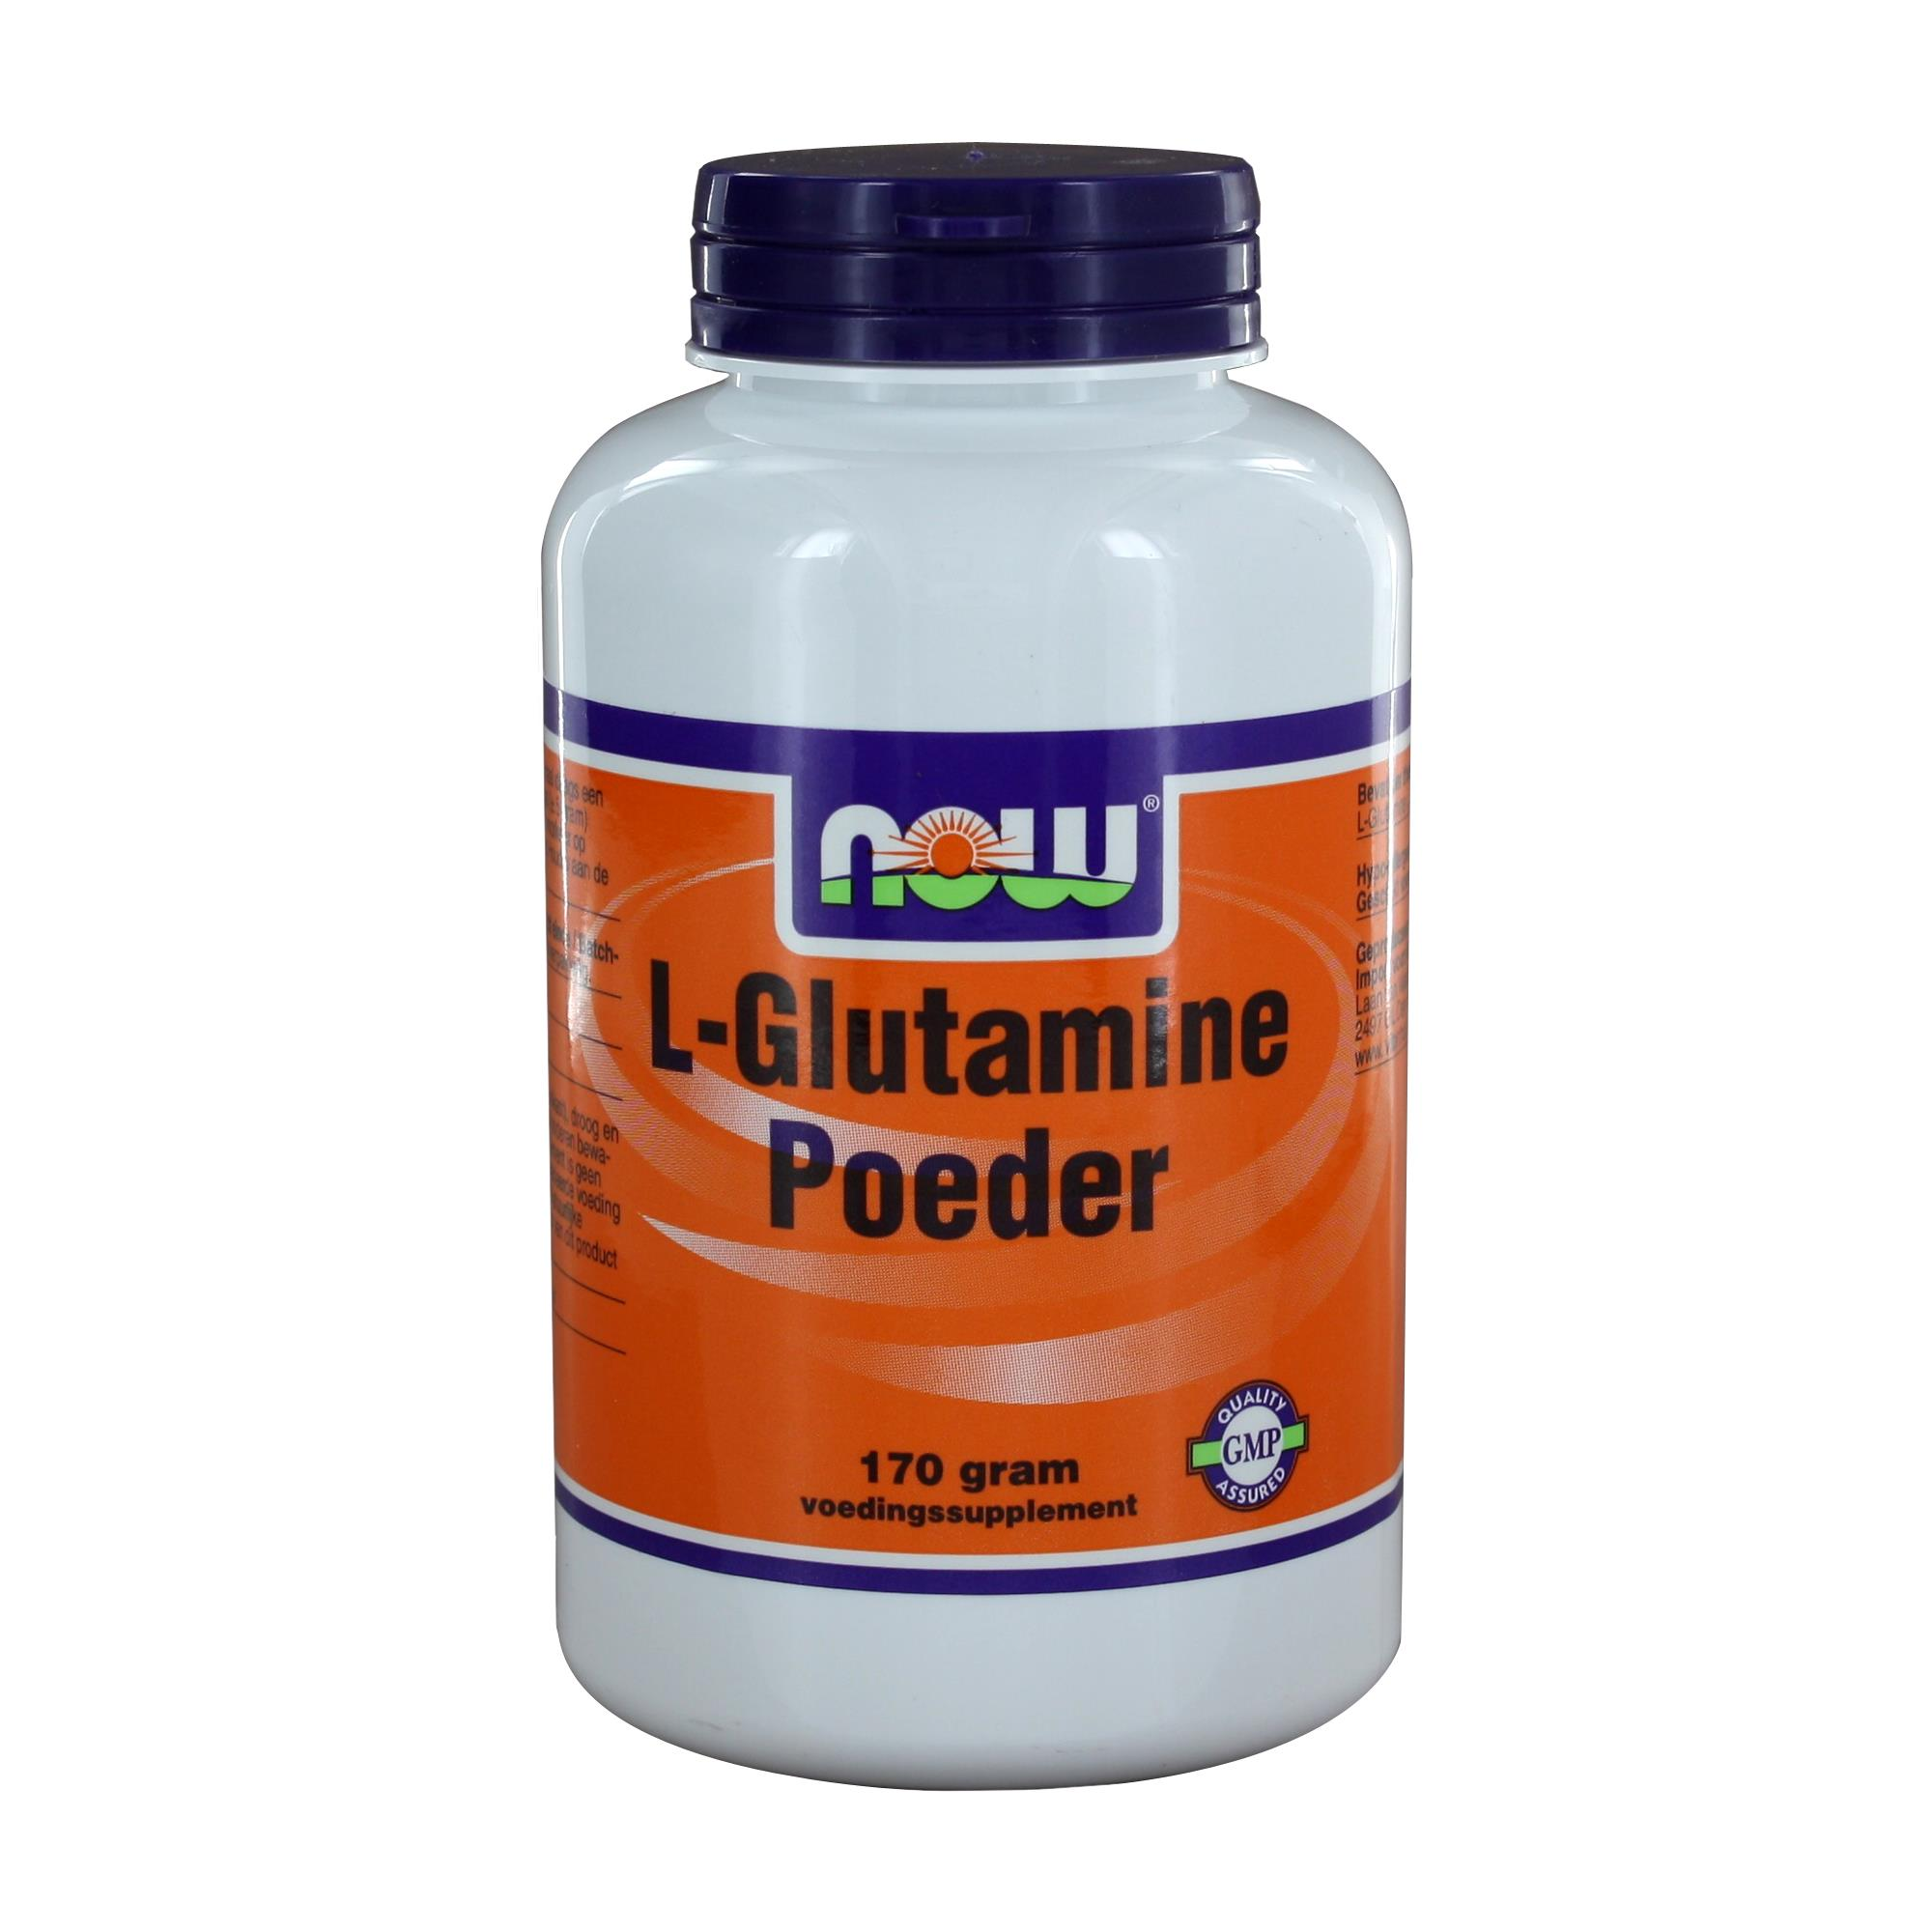 img 1071 - L-Glutamine Poeder (170 gram) - NOW Foods